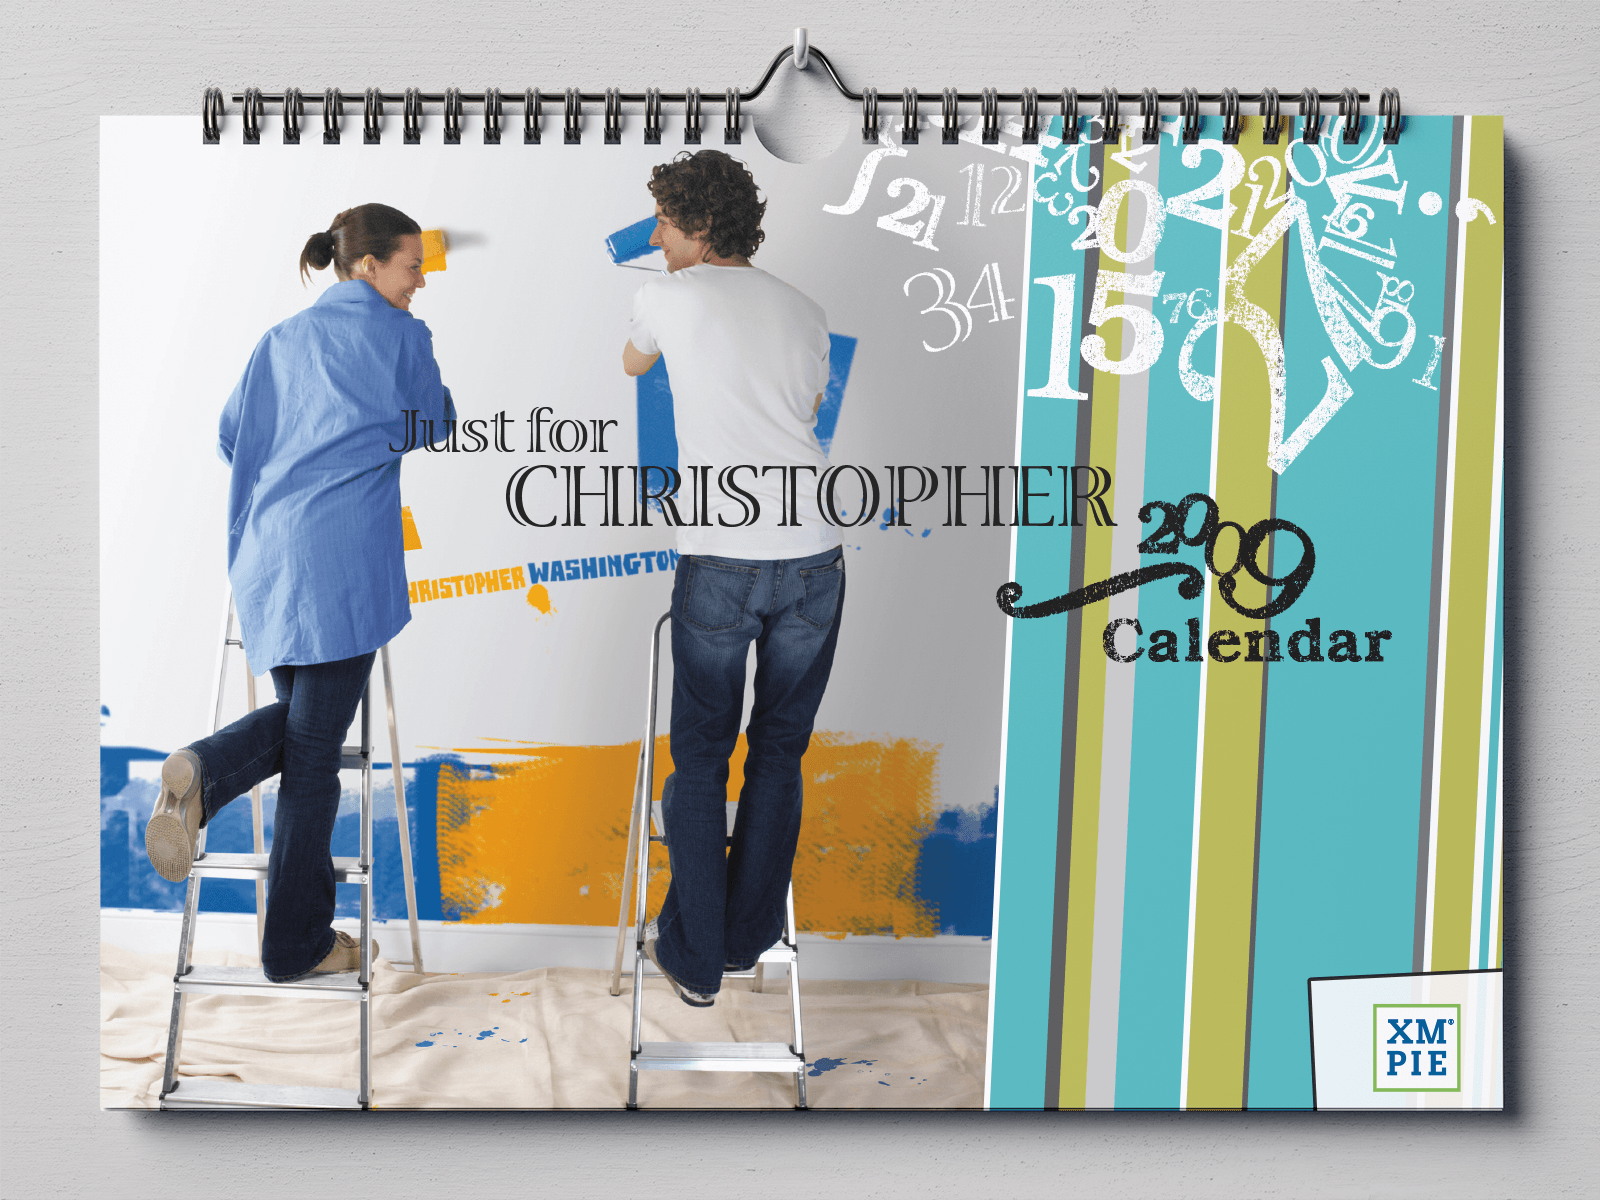 http://bigeyes.co.il/wp-content/uploads/2019/07/college-calendar-1.png